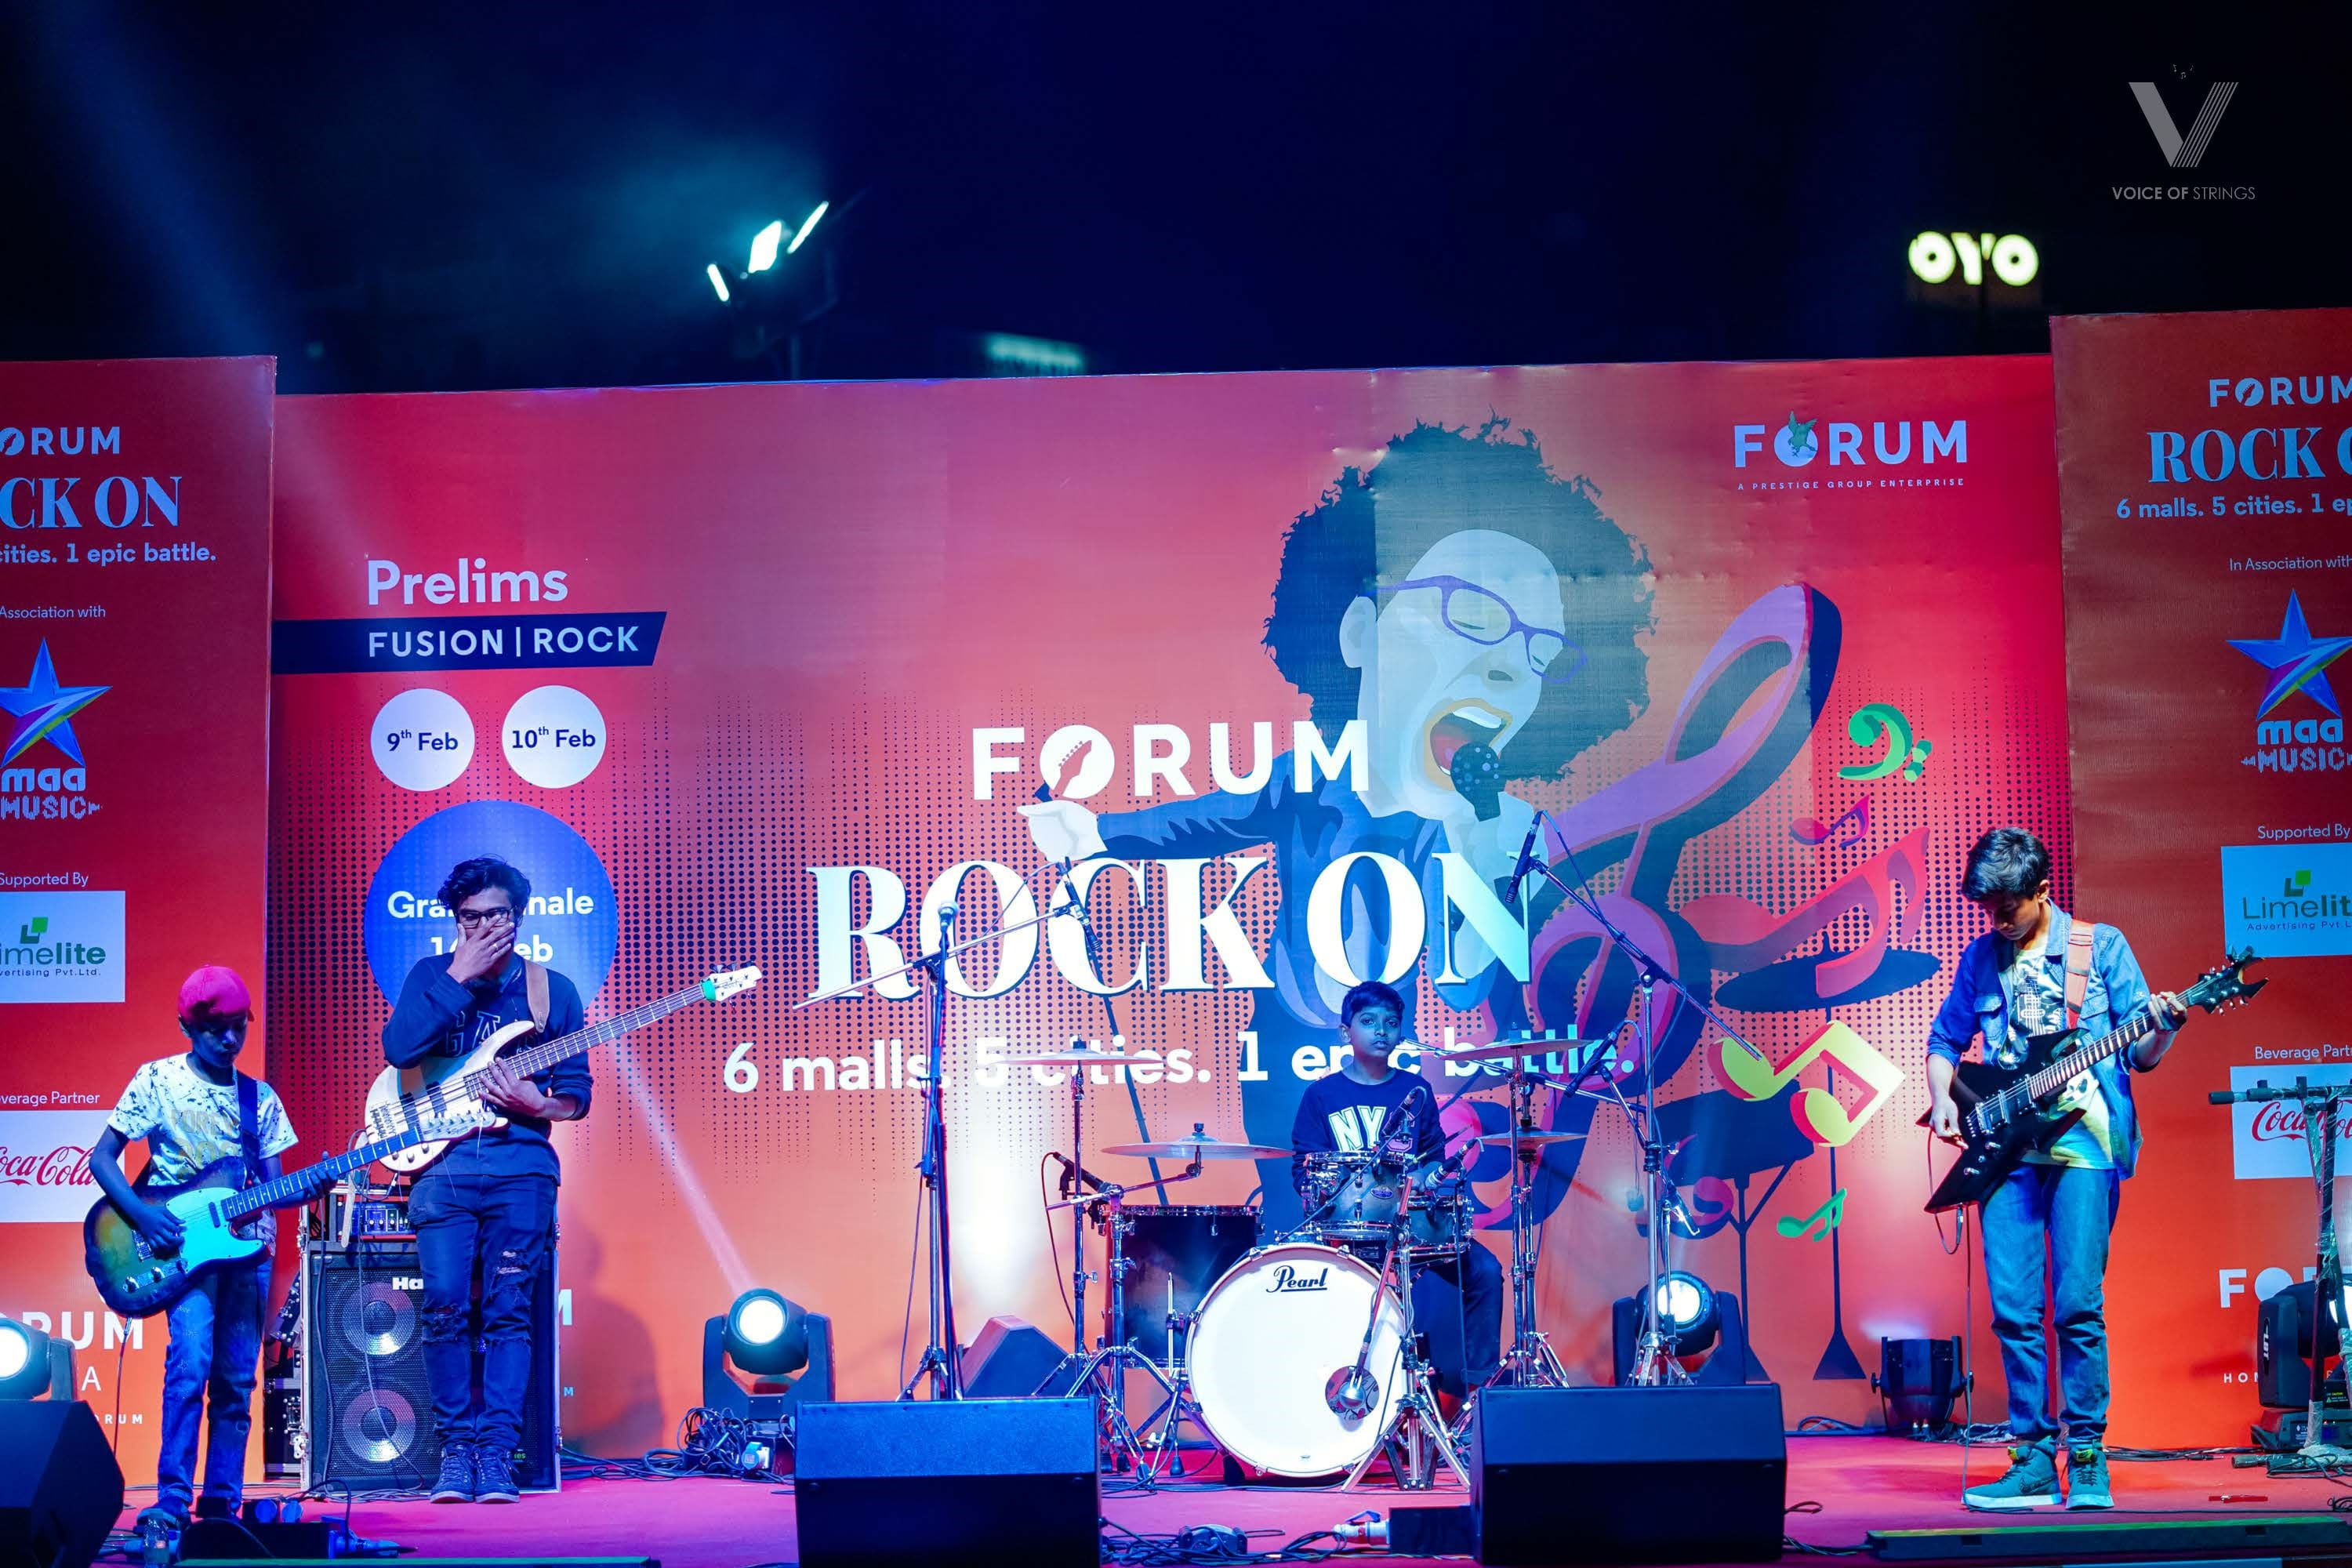 Rock On at Forum